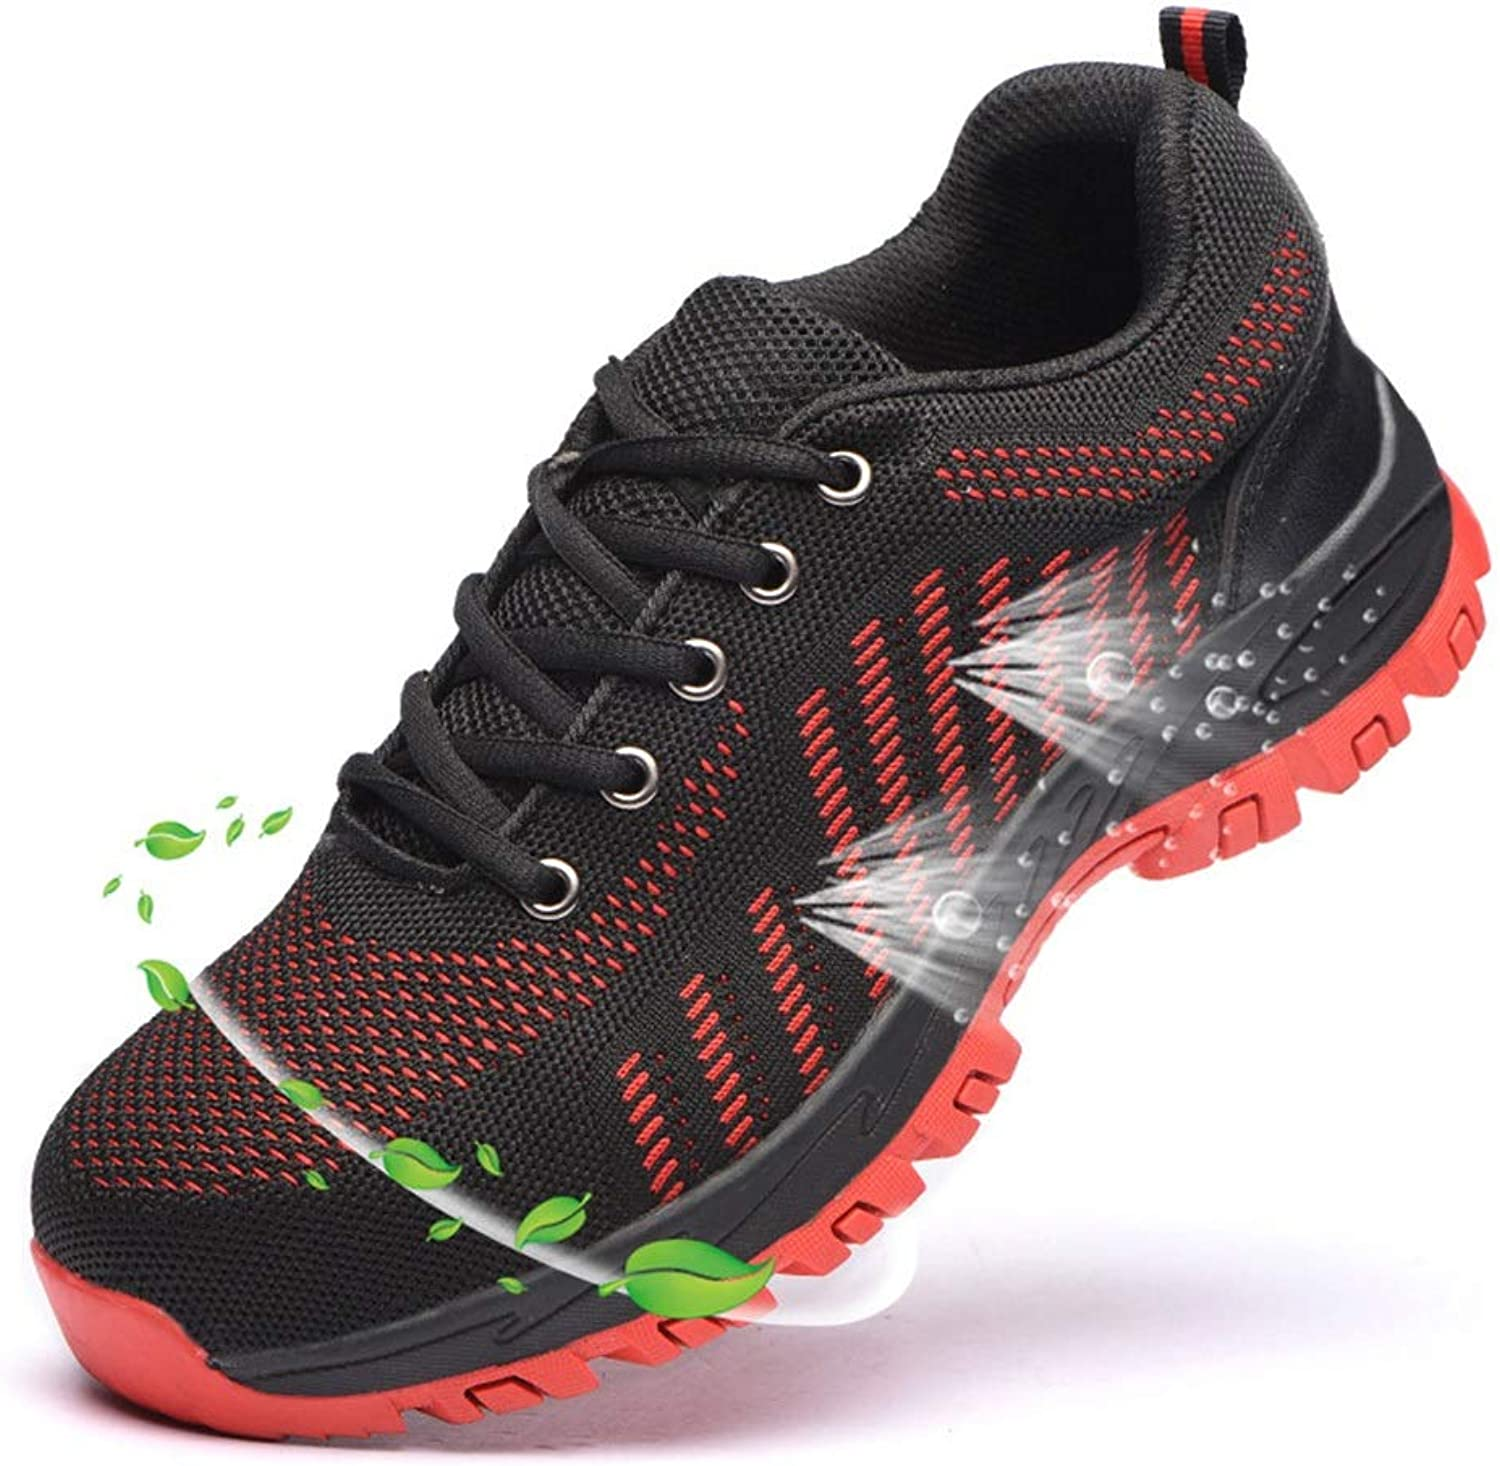 Williess Summer Breathable Outdoor Sports shoes Labor Predection Safety shoes Anti-Smashing Anti-Slip Anti-Slip (color   Red, Size   41)